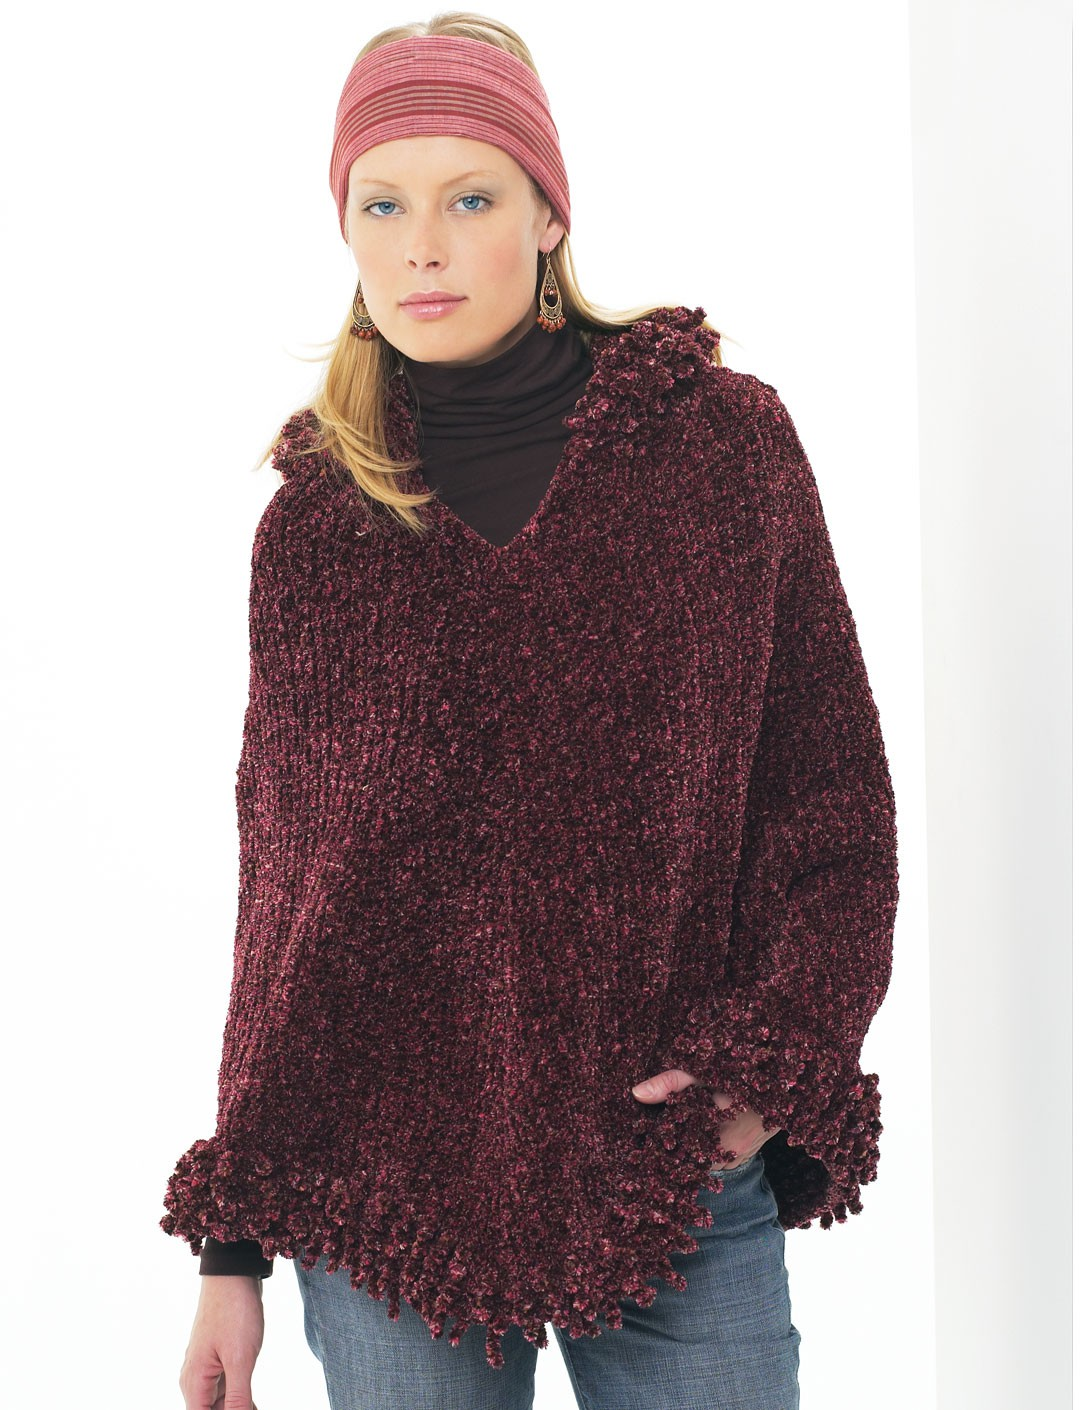 Hooded poncho patterns yarnspirations hooded poncho bankloansurffo Choice Image